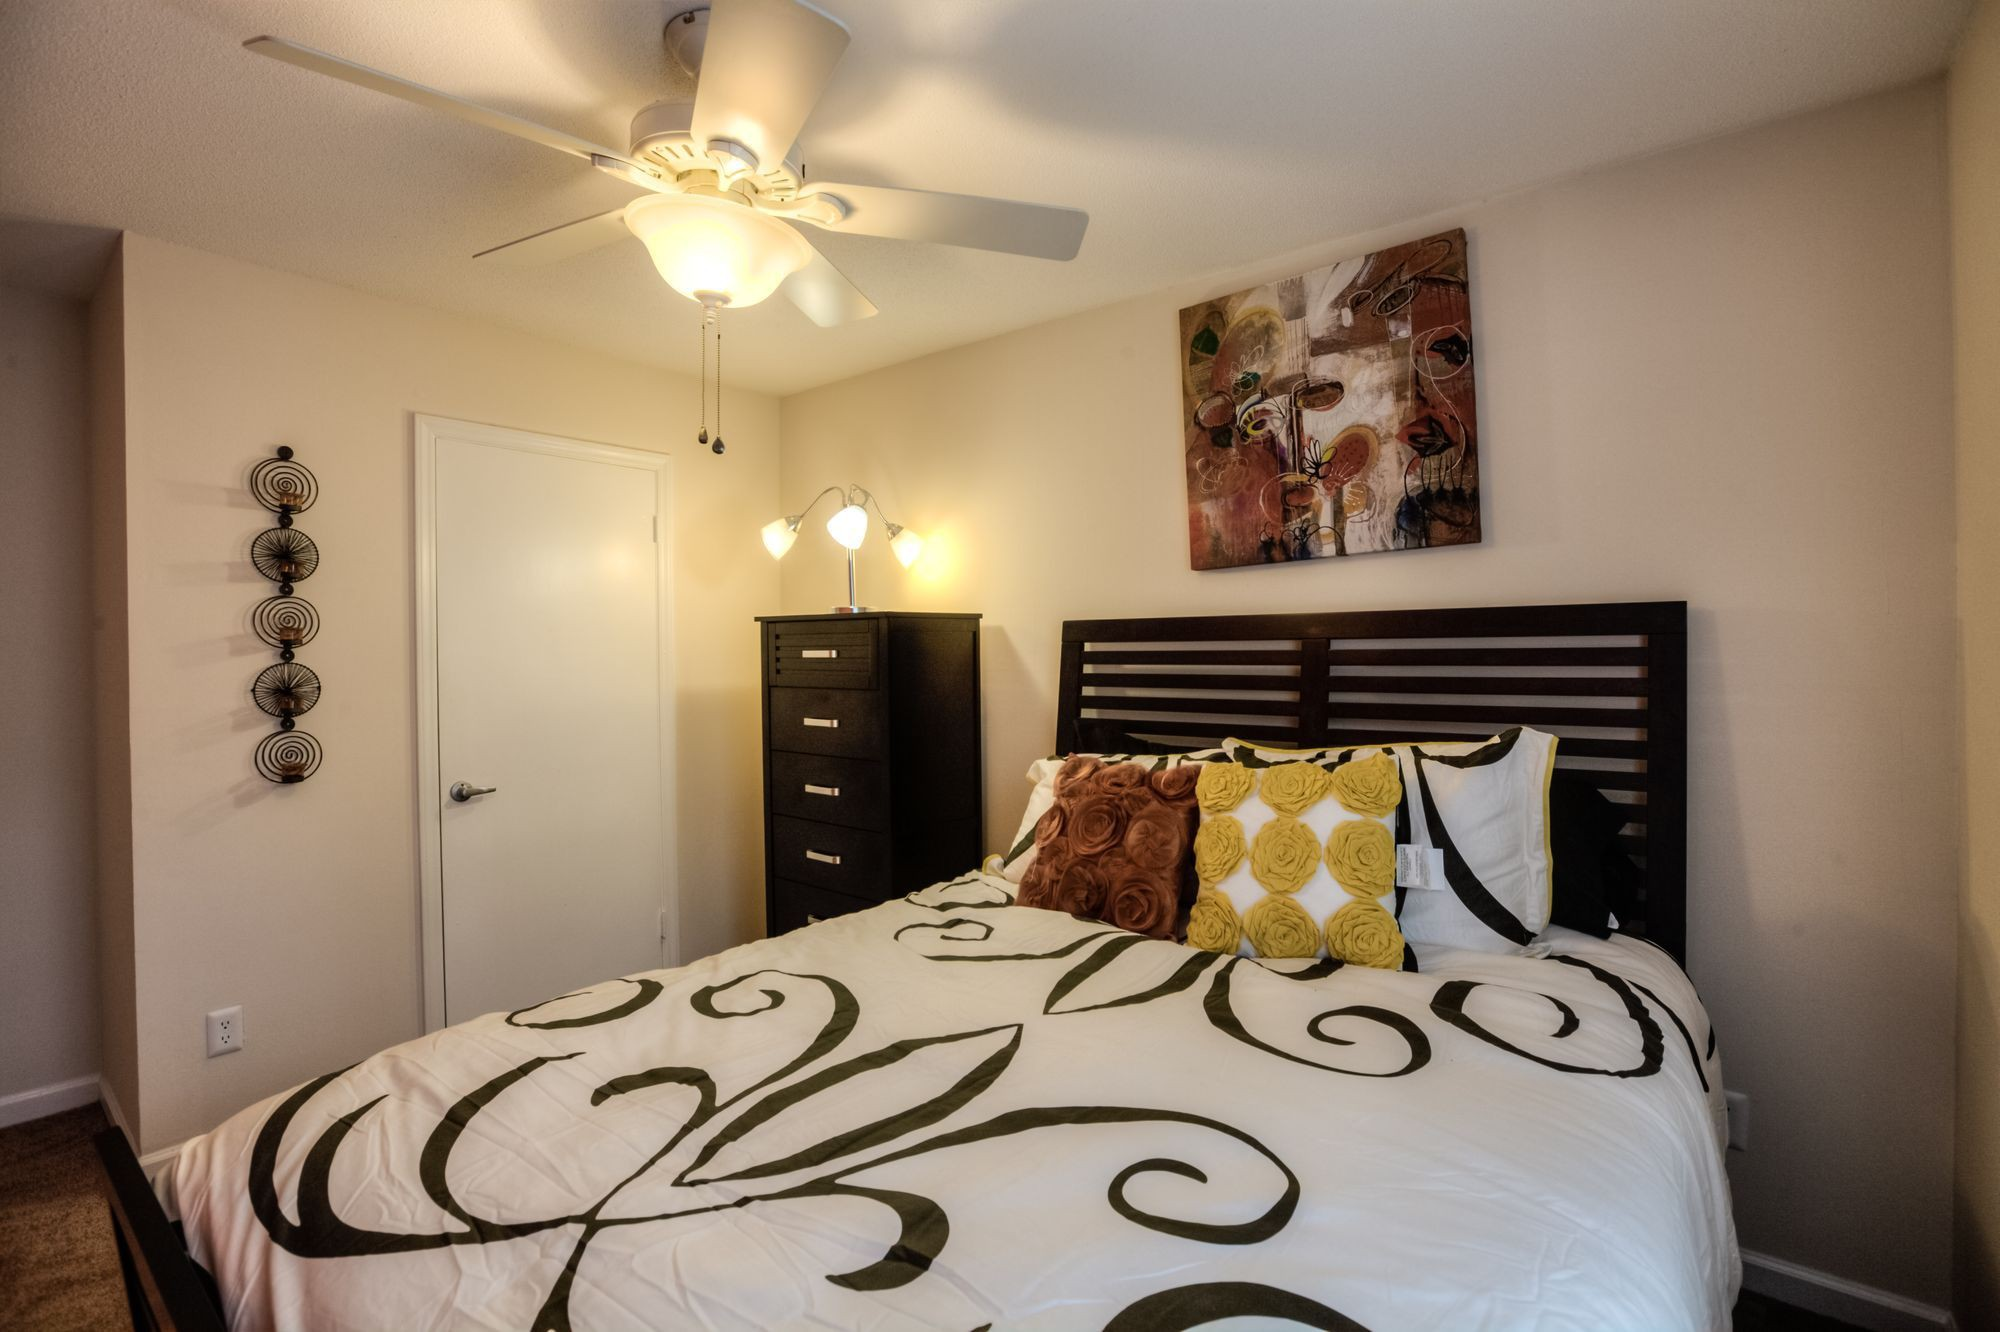 Apartments Near NCCU 501 Towns for North Carolina Central University Students in Durham, NC